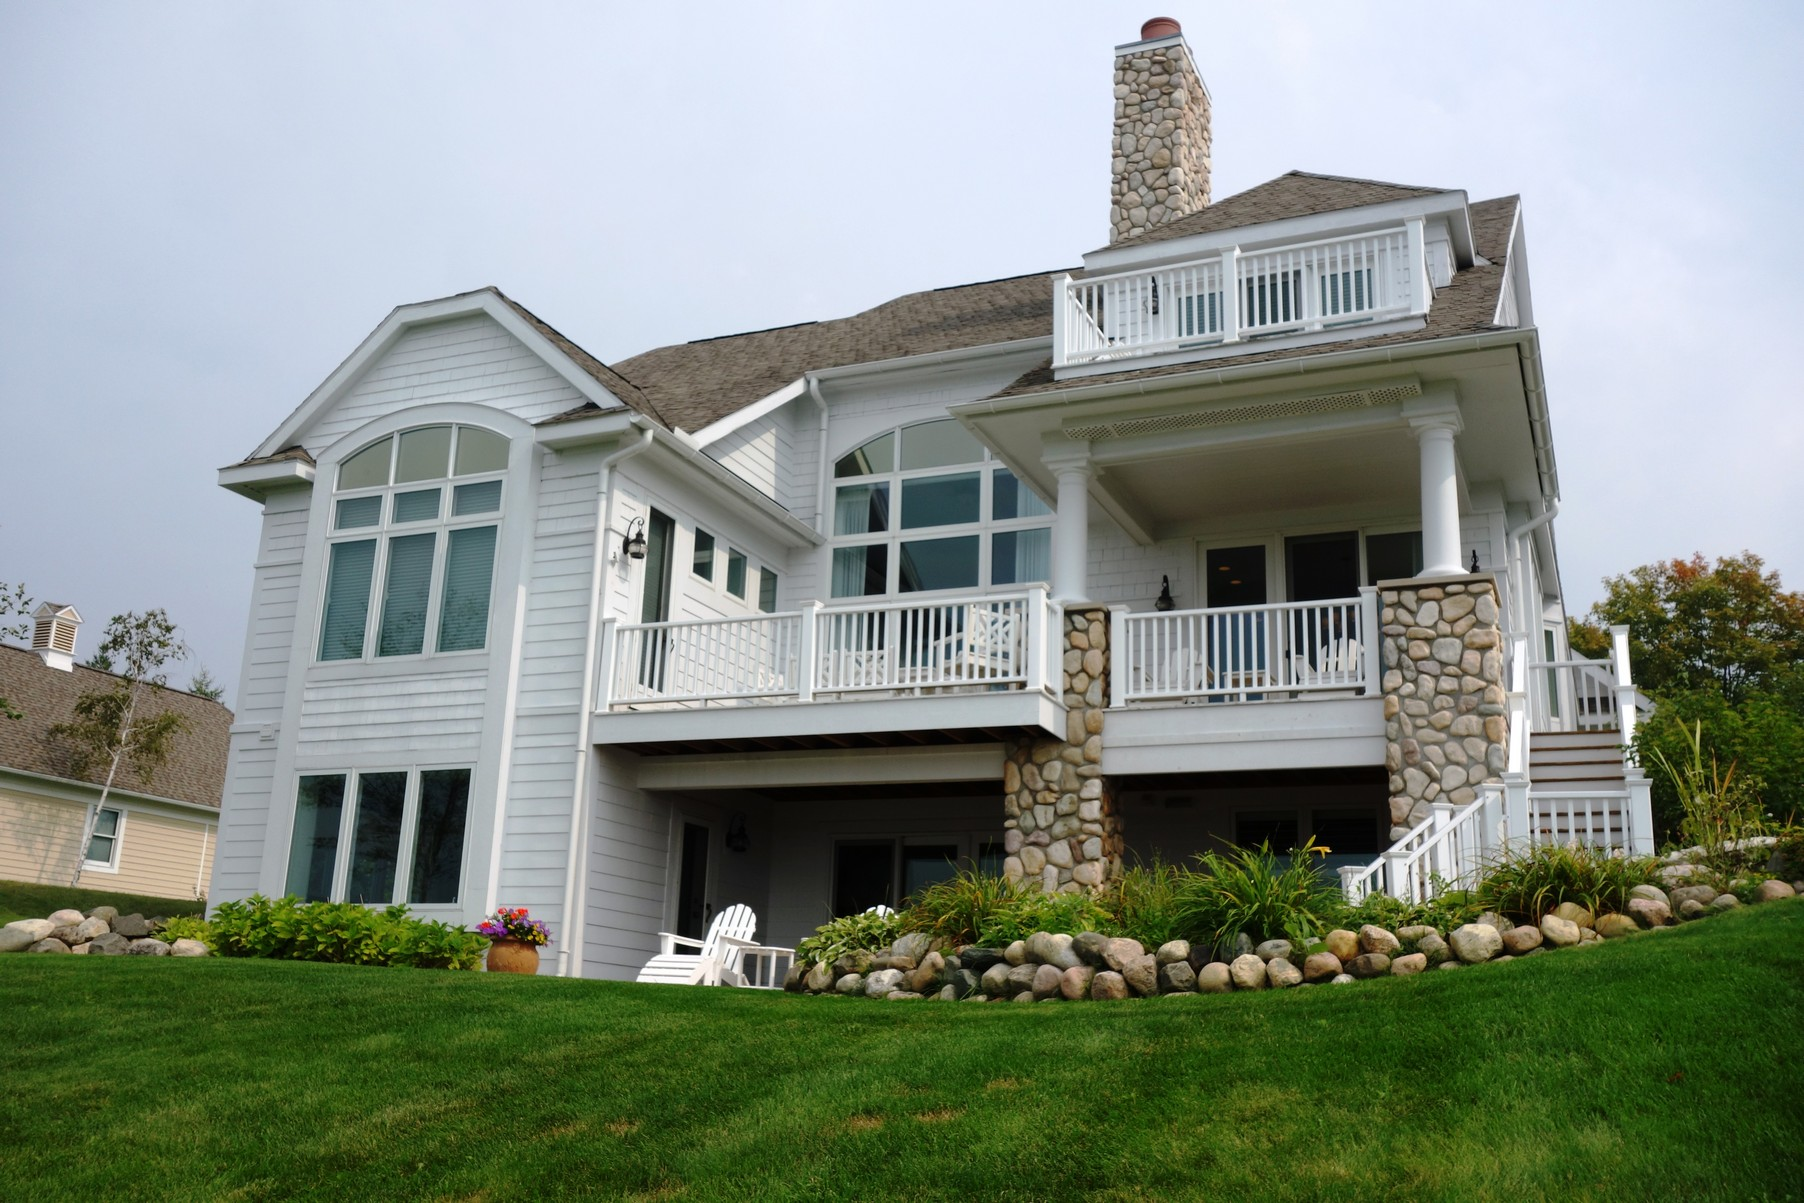 Single Family Home for Sale at Bluffs Cottage 922 Bluffs Court Bay Harbor, Michigan, 49770 United States